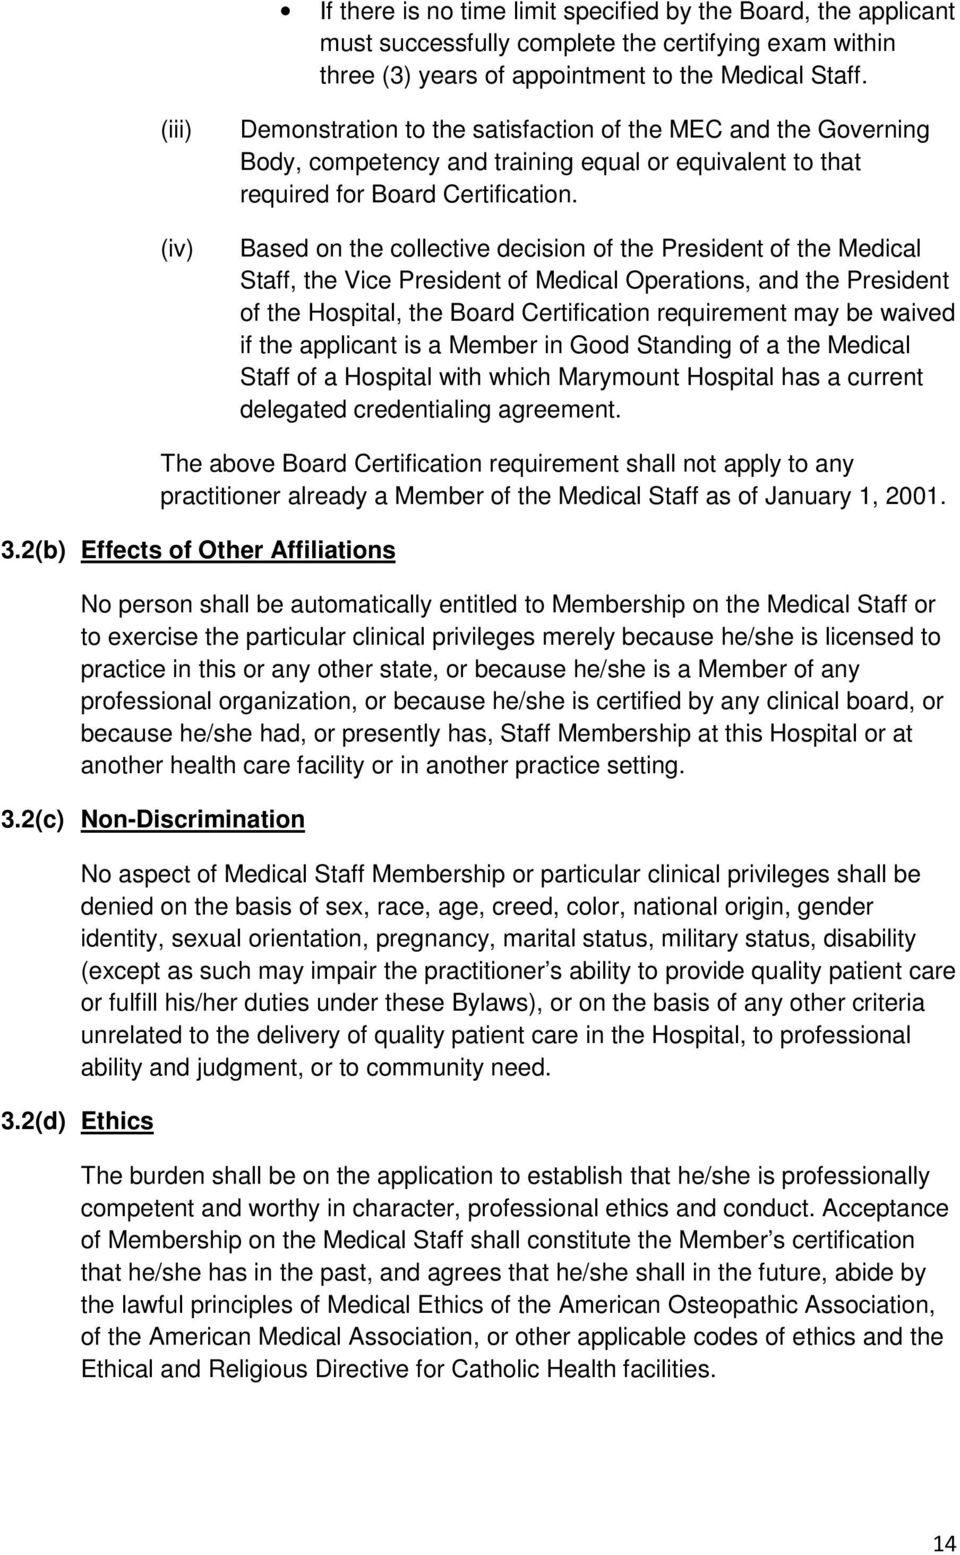 Based on the collective decision of the President of the Medical Staff, the Vice President of Medical Operations, and the President of the Hospital, the Board Certification requirement may be waived